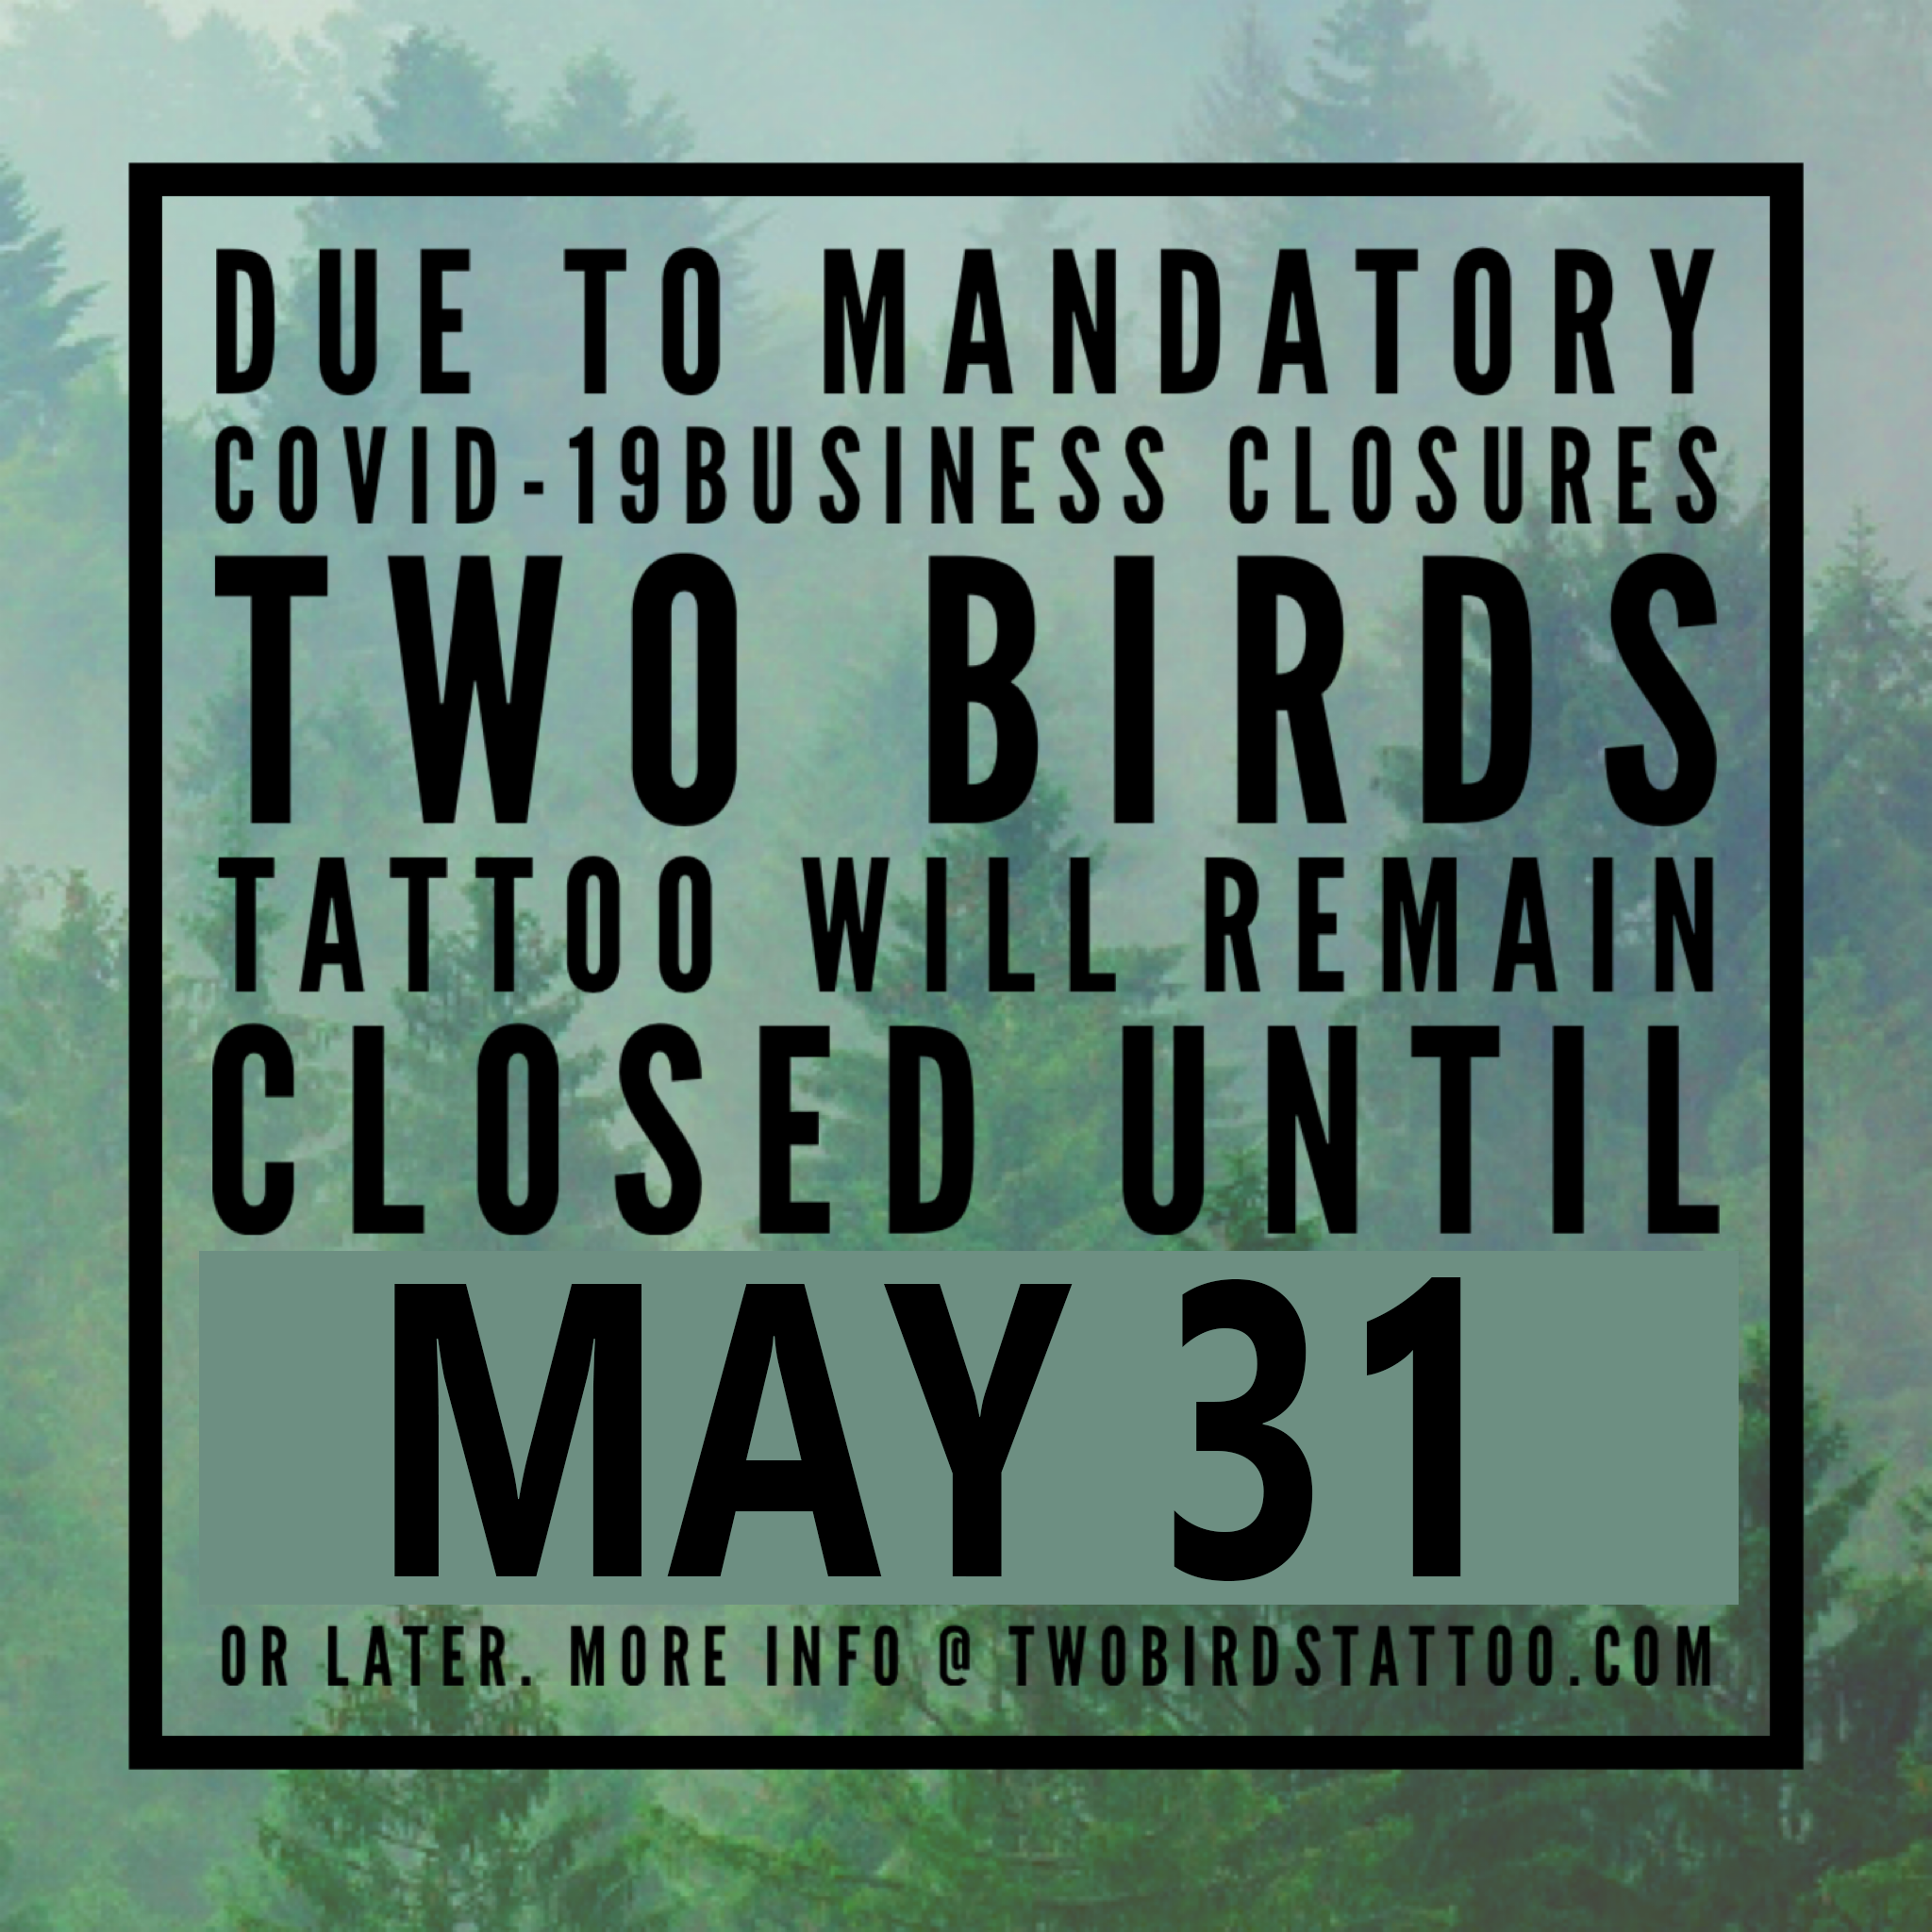 We will be closed until May 31, or later.